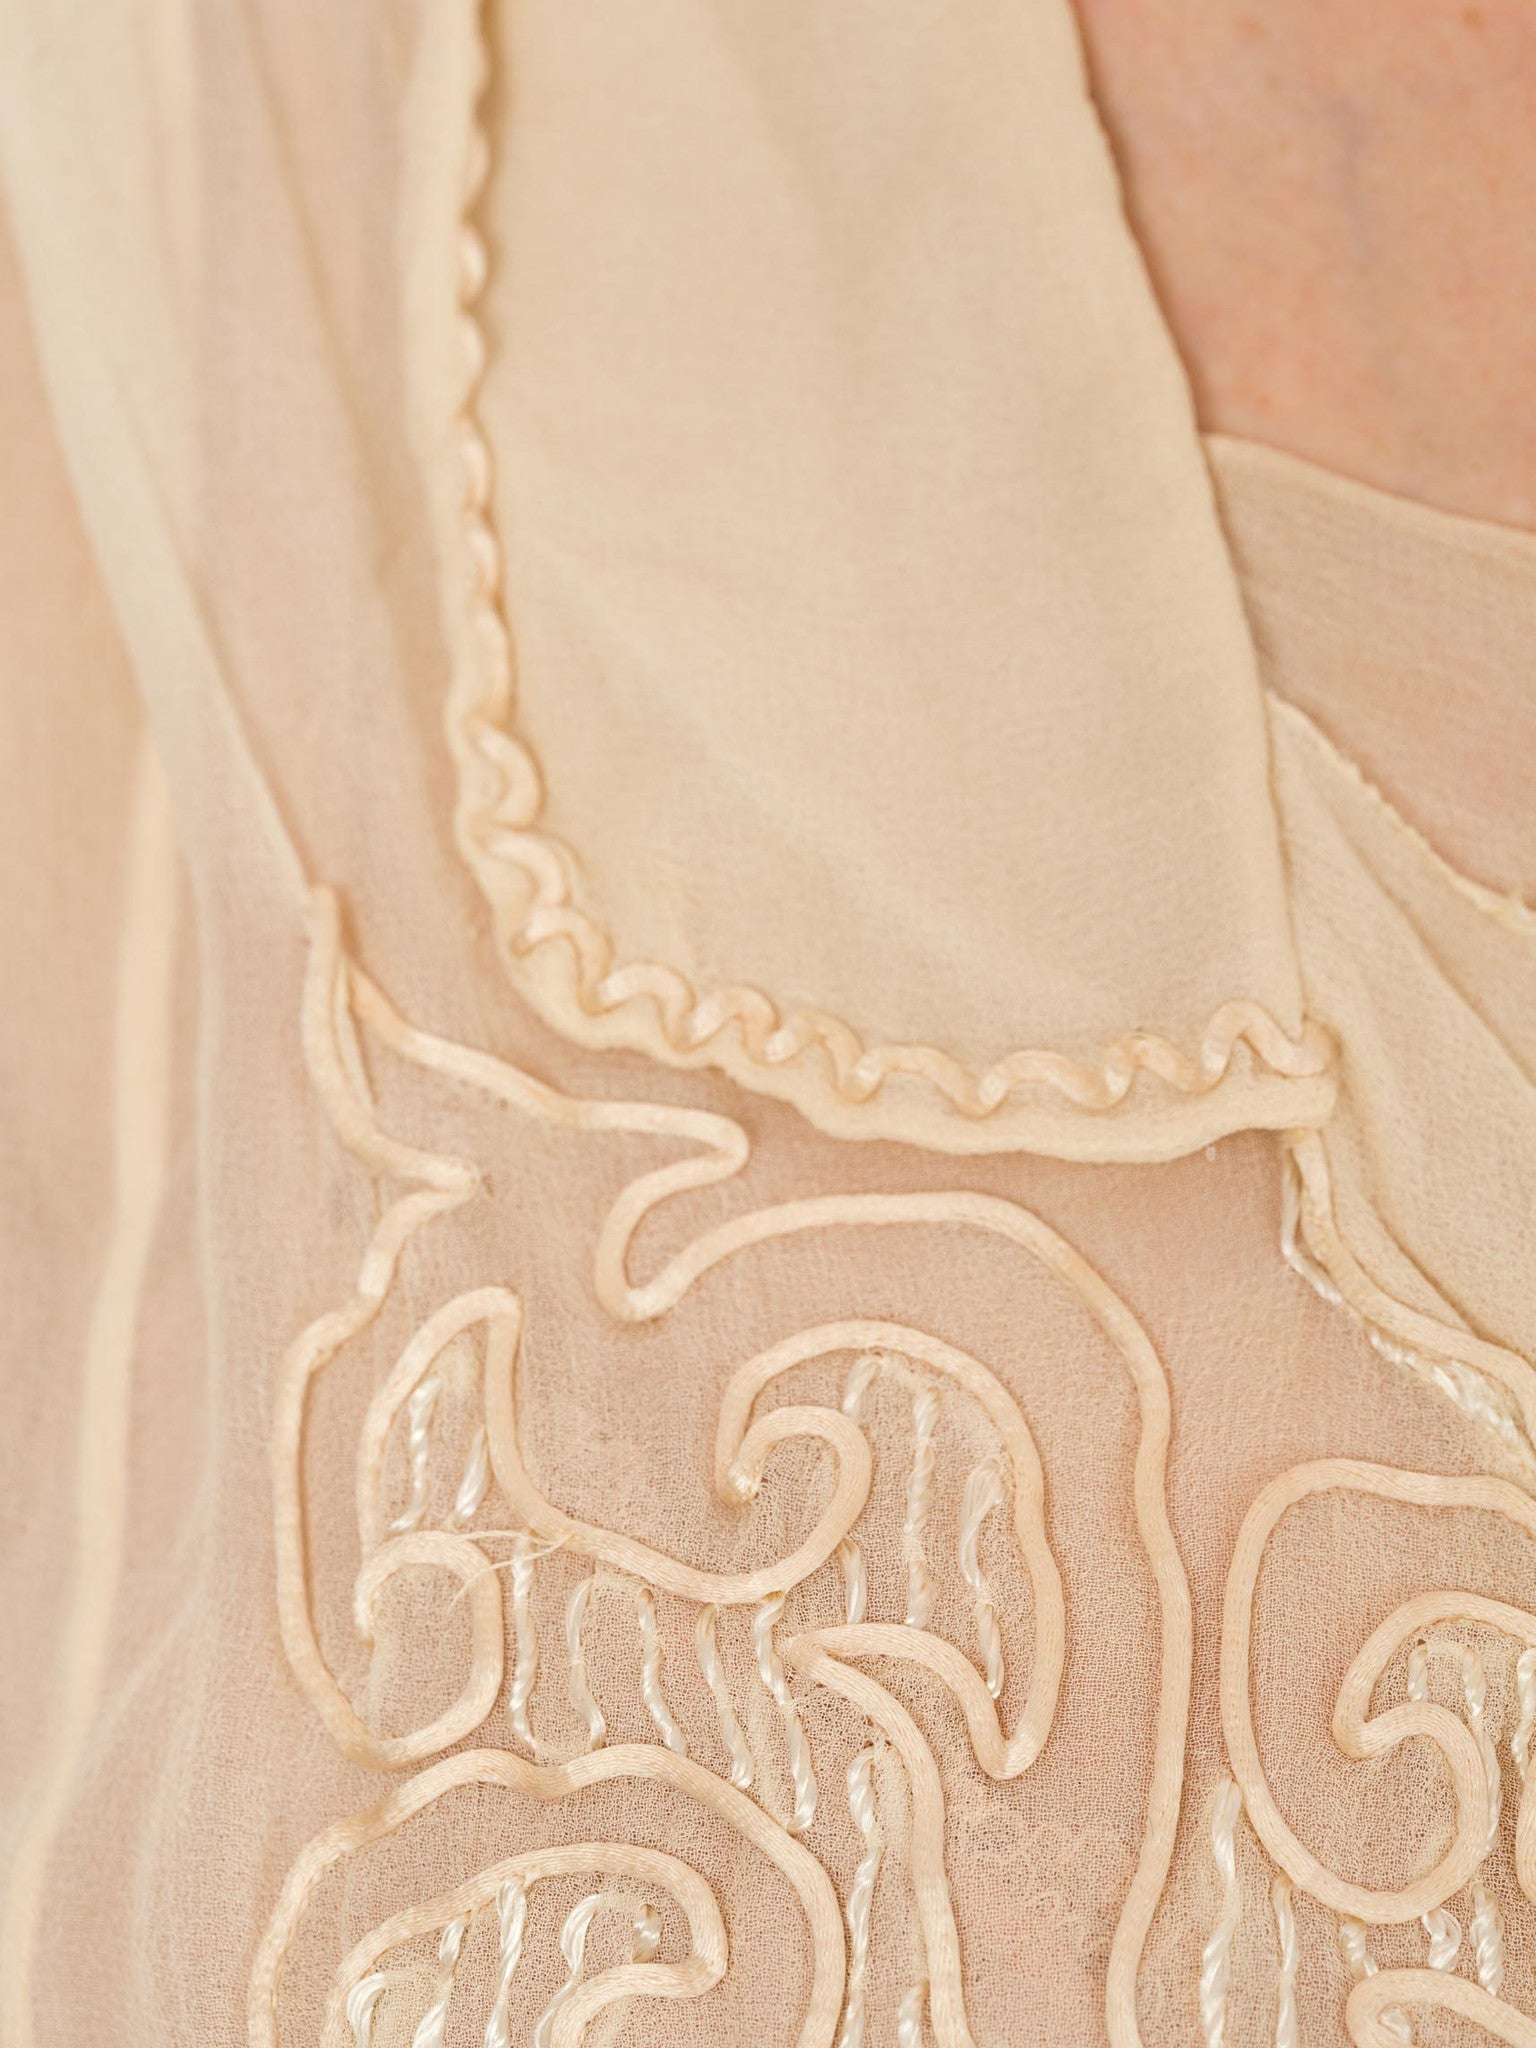 Edwardian Ecru Silk Chiffon Long Sleeve Blouse With Satin Cord Embroidery